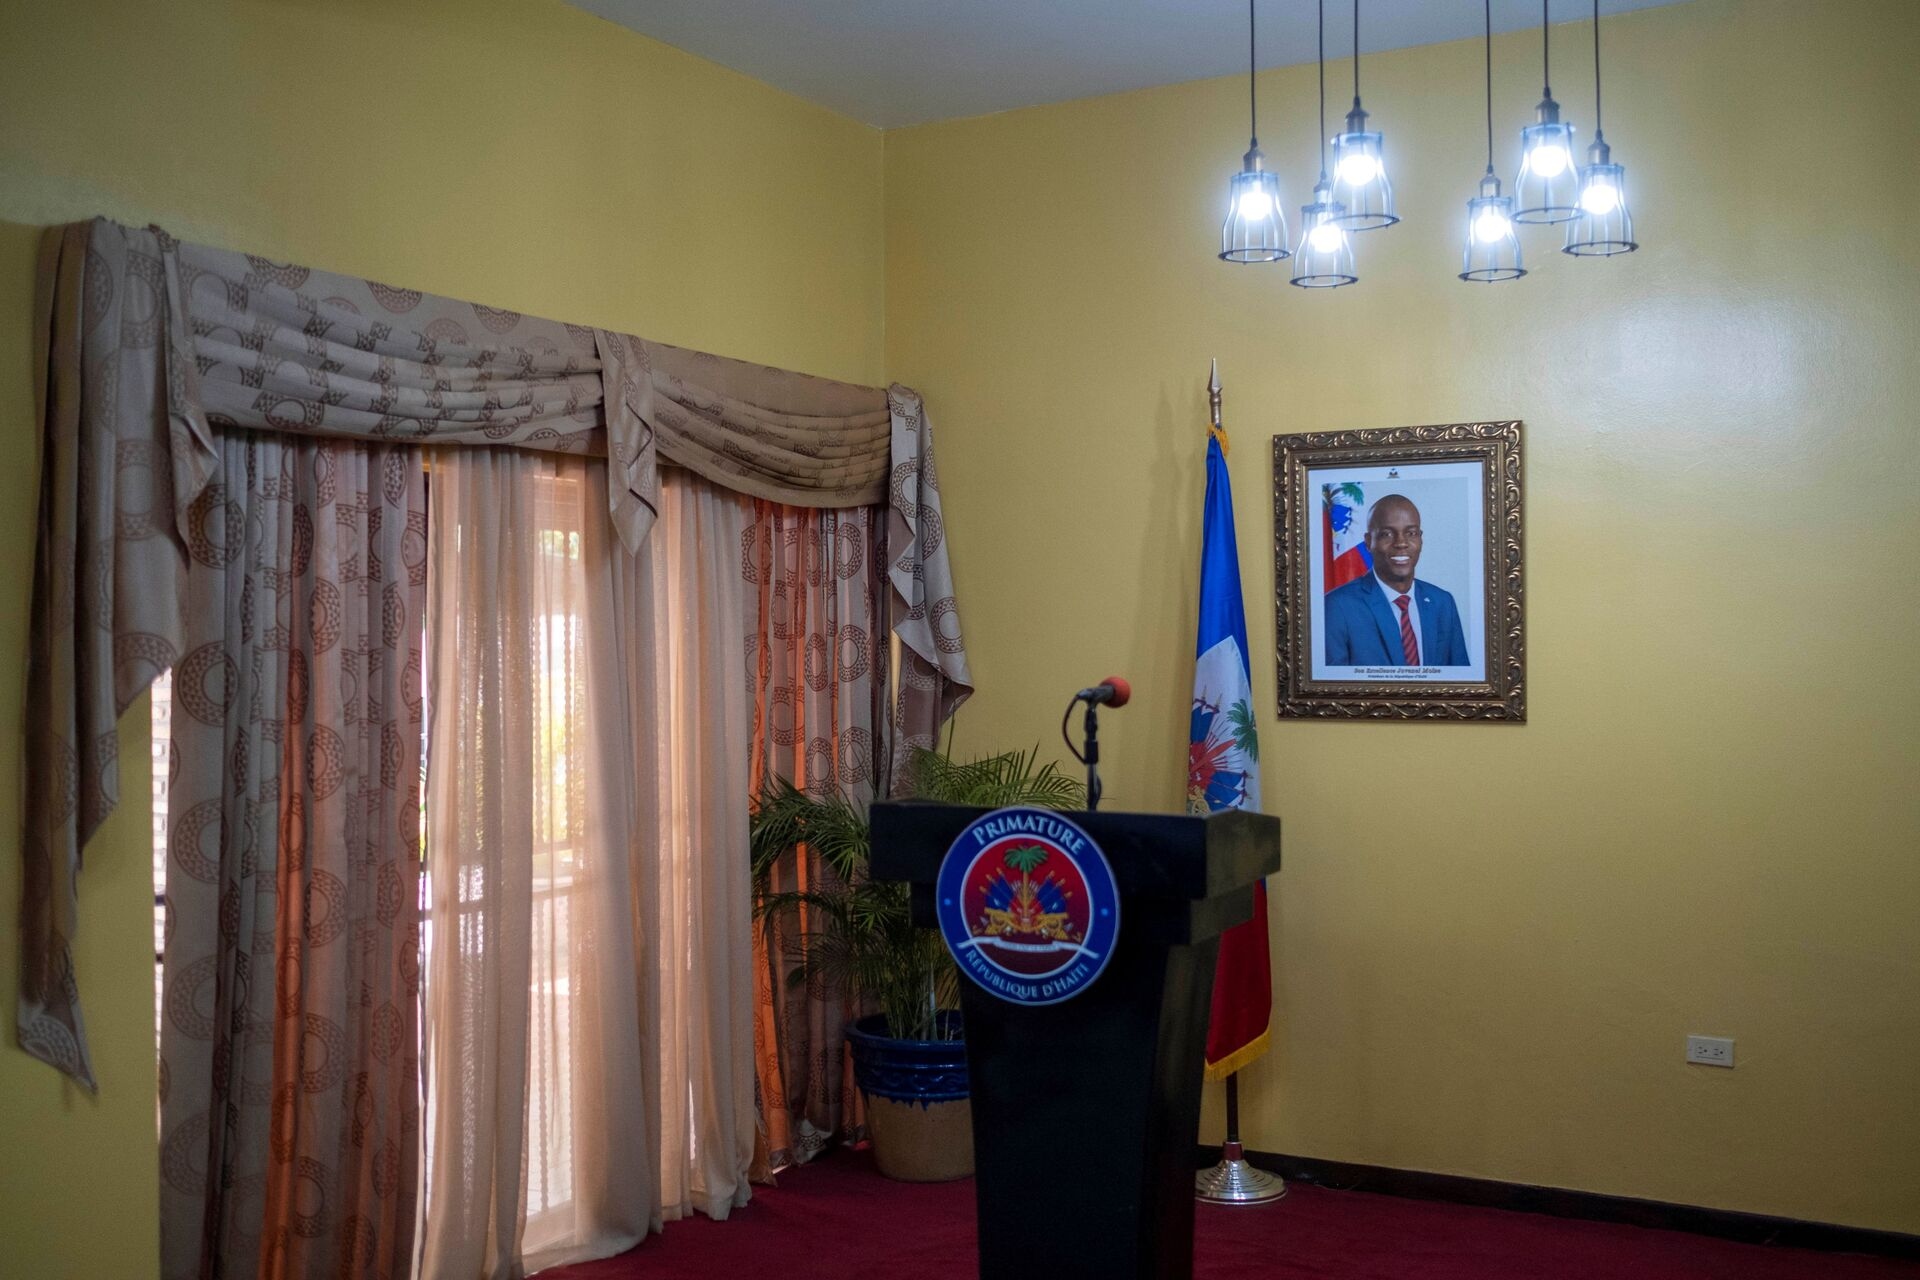 A picture of the late Haitian President Jovenel Moise hangs on a wall before a news conference by interim Prime Minister Claude Joseph at his house, almost a week after his assassination, in Port-au-Prince, Haiti July 13, 2021 - Sputnik International, 1920, 07.09.2021